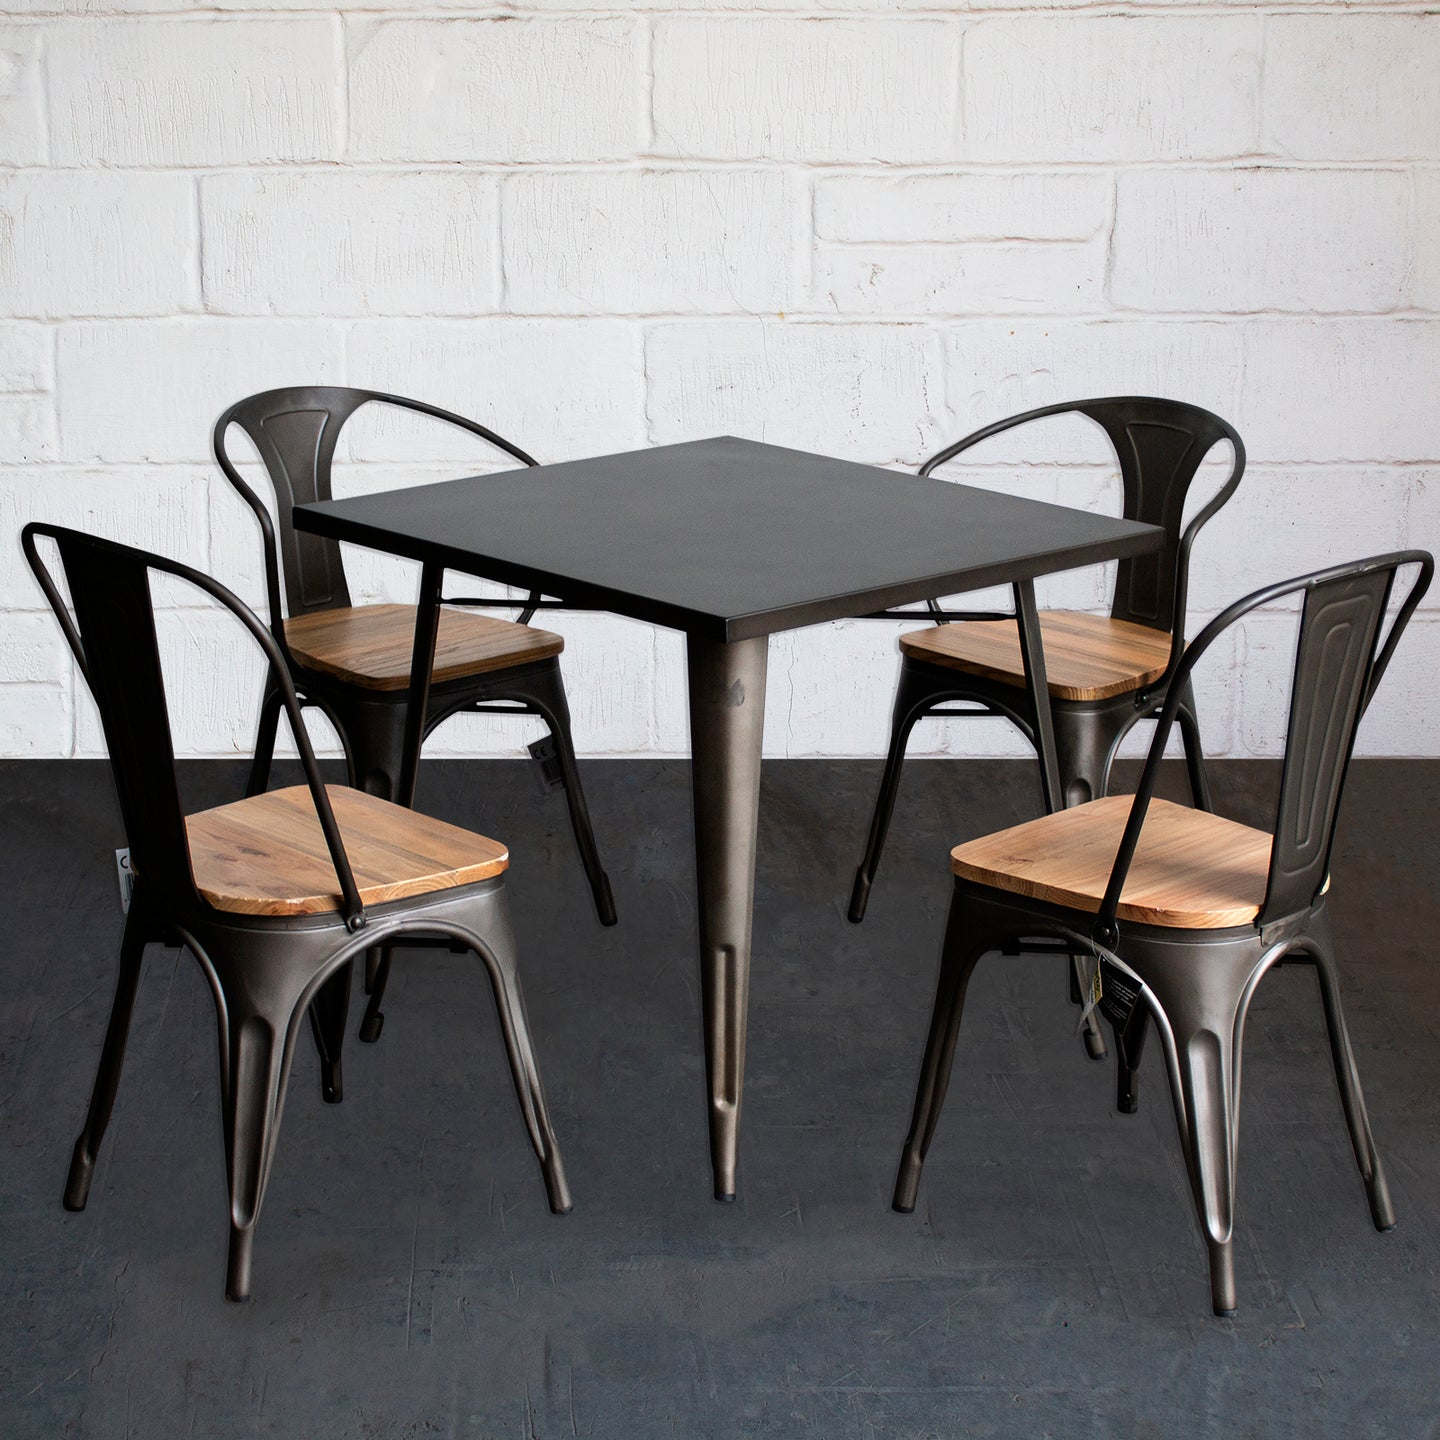 5PC Belvedere Table Florence & Palermo Chairs Set - Gun Metal Grey